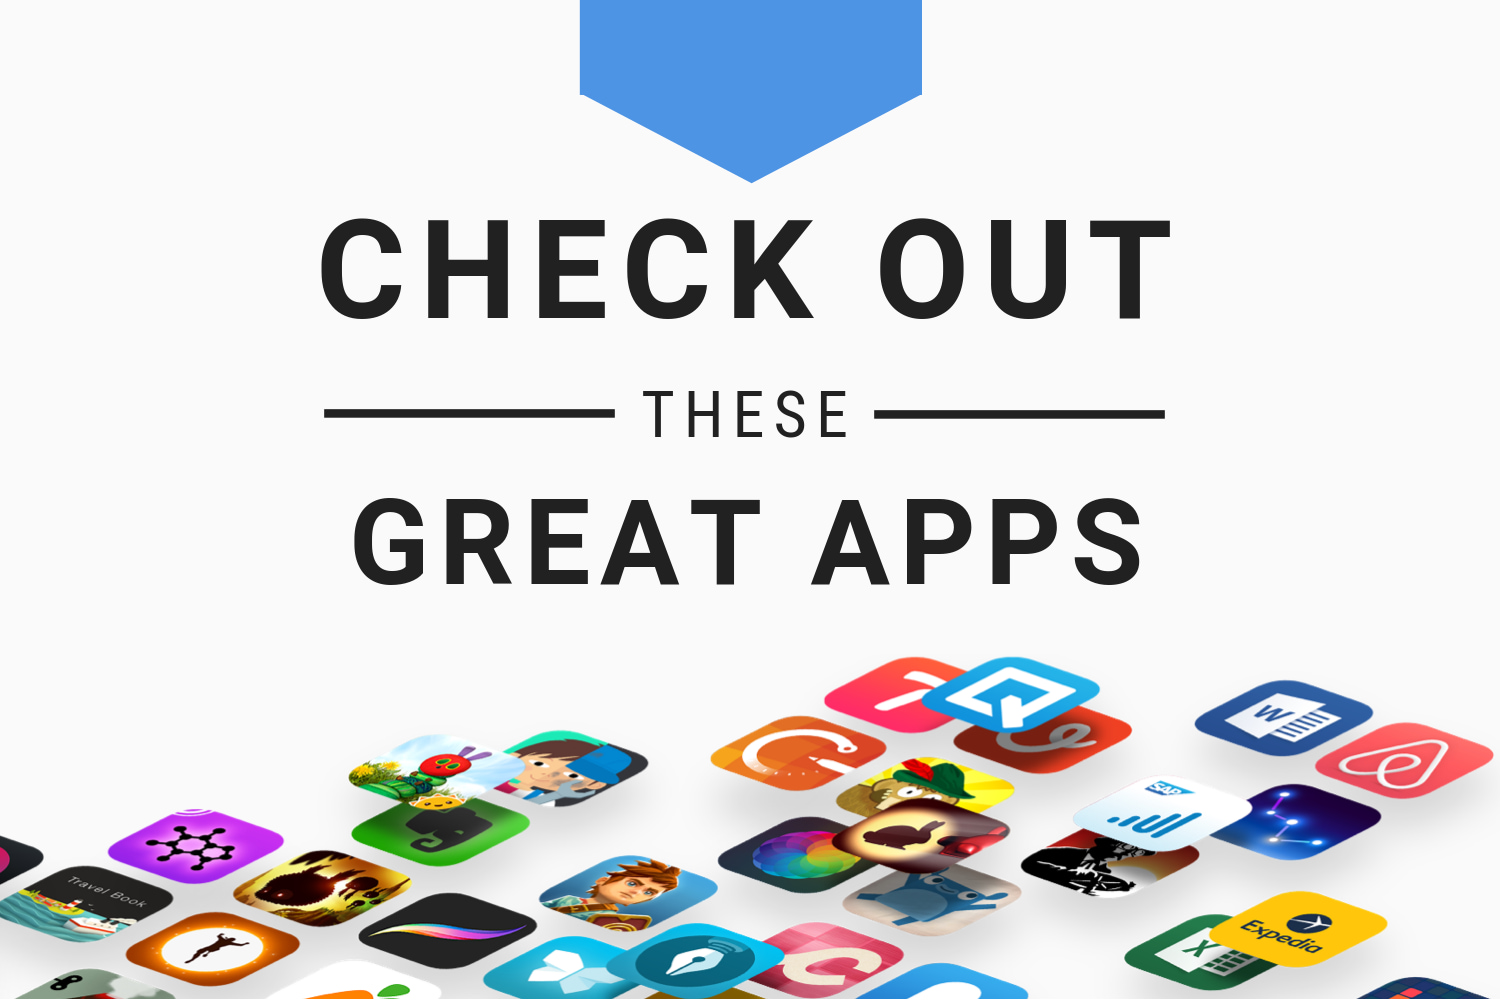 Kickstart, Disflow, 24FPS and other apps to check out this weekend